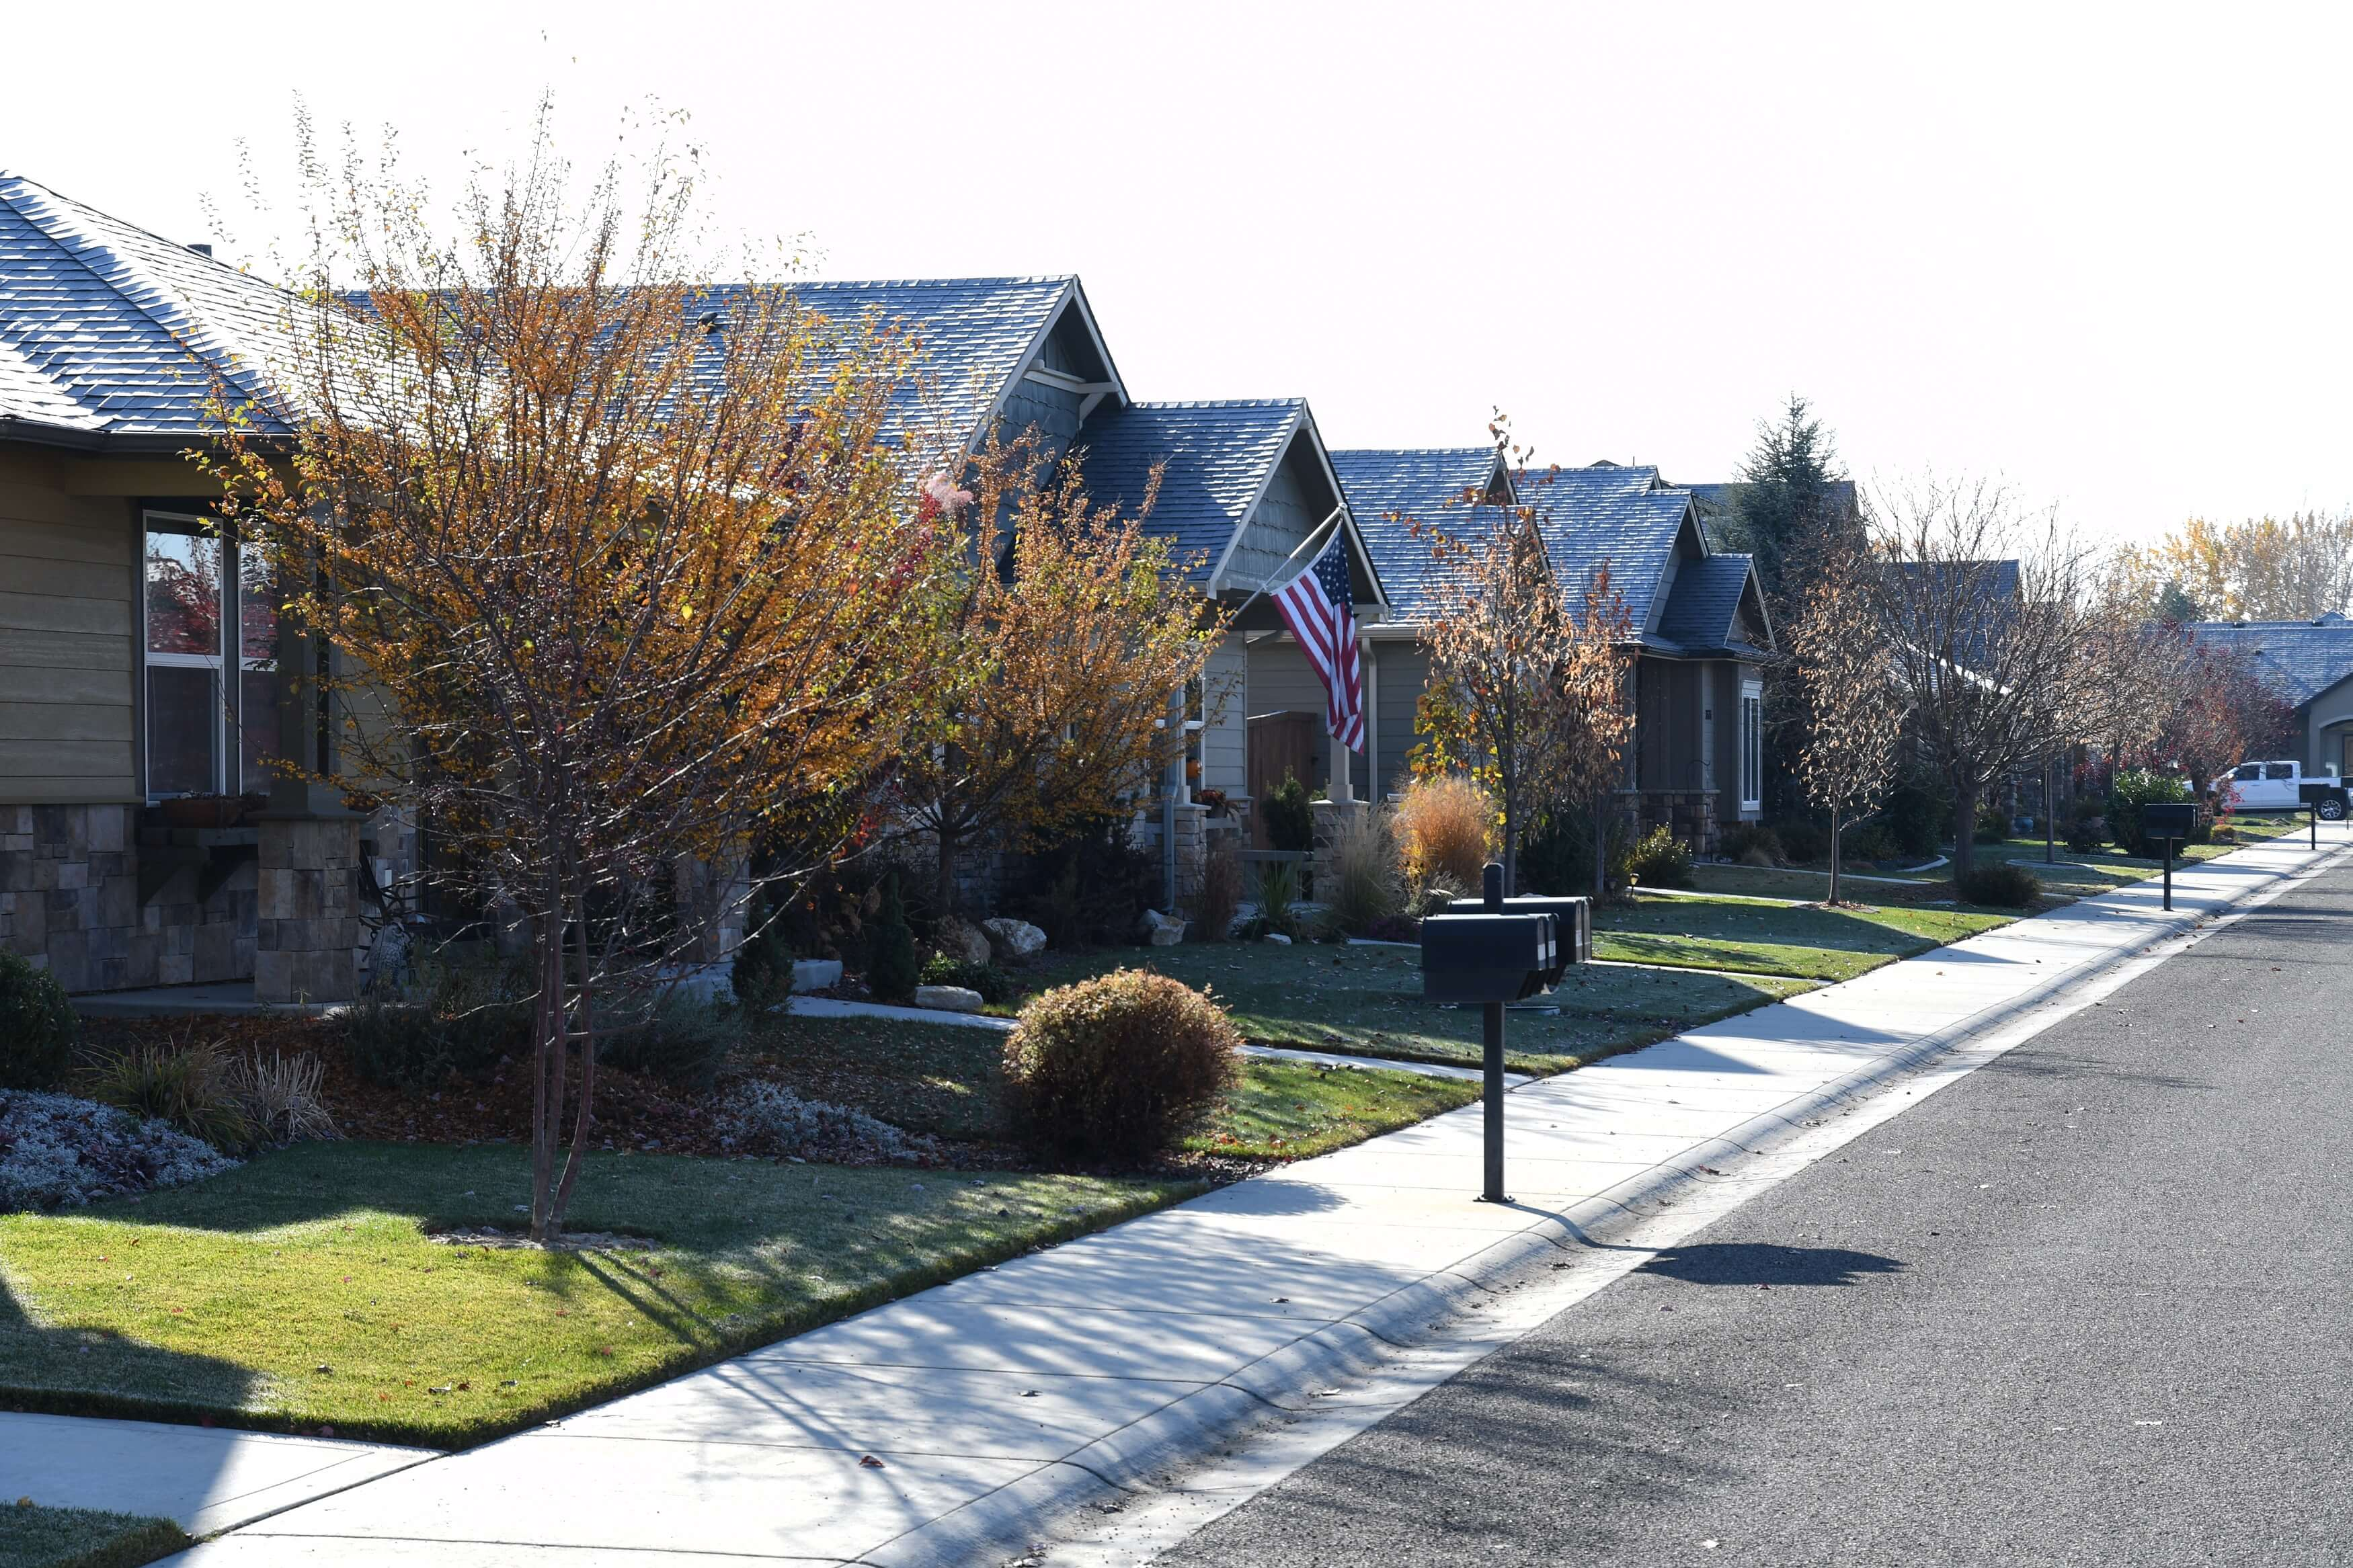 Street view of Boise neighborhood